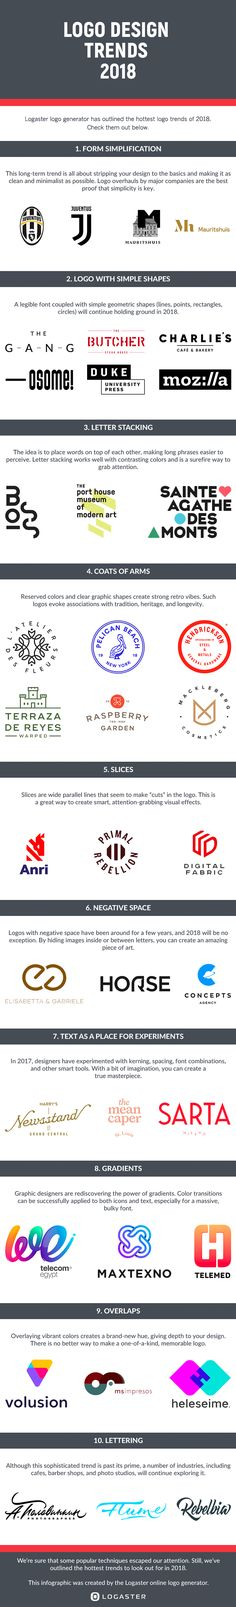 Logo Design Trends to Watch for in 2019 [Infographic] 10 Logo Design Trends to Watch for in 2018 Logo Design Trends to Watch for in 2018 [Infographic] 10 Logo, Typography Logo, Typography Design, Branding Design, Graphic Design Tips, Graphic Design Inspiration, Blog Design, Corporate Design, Corporate Logos